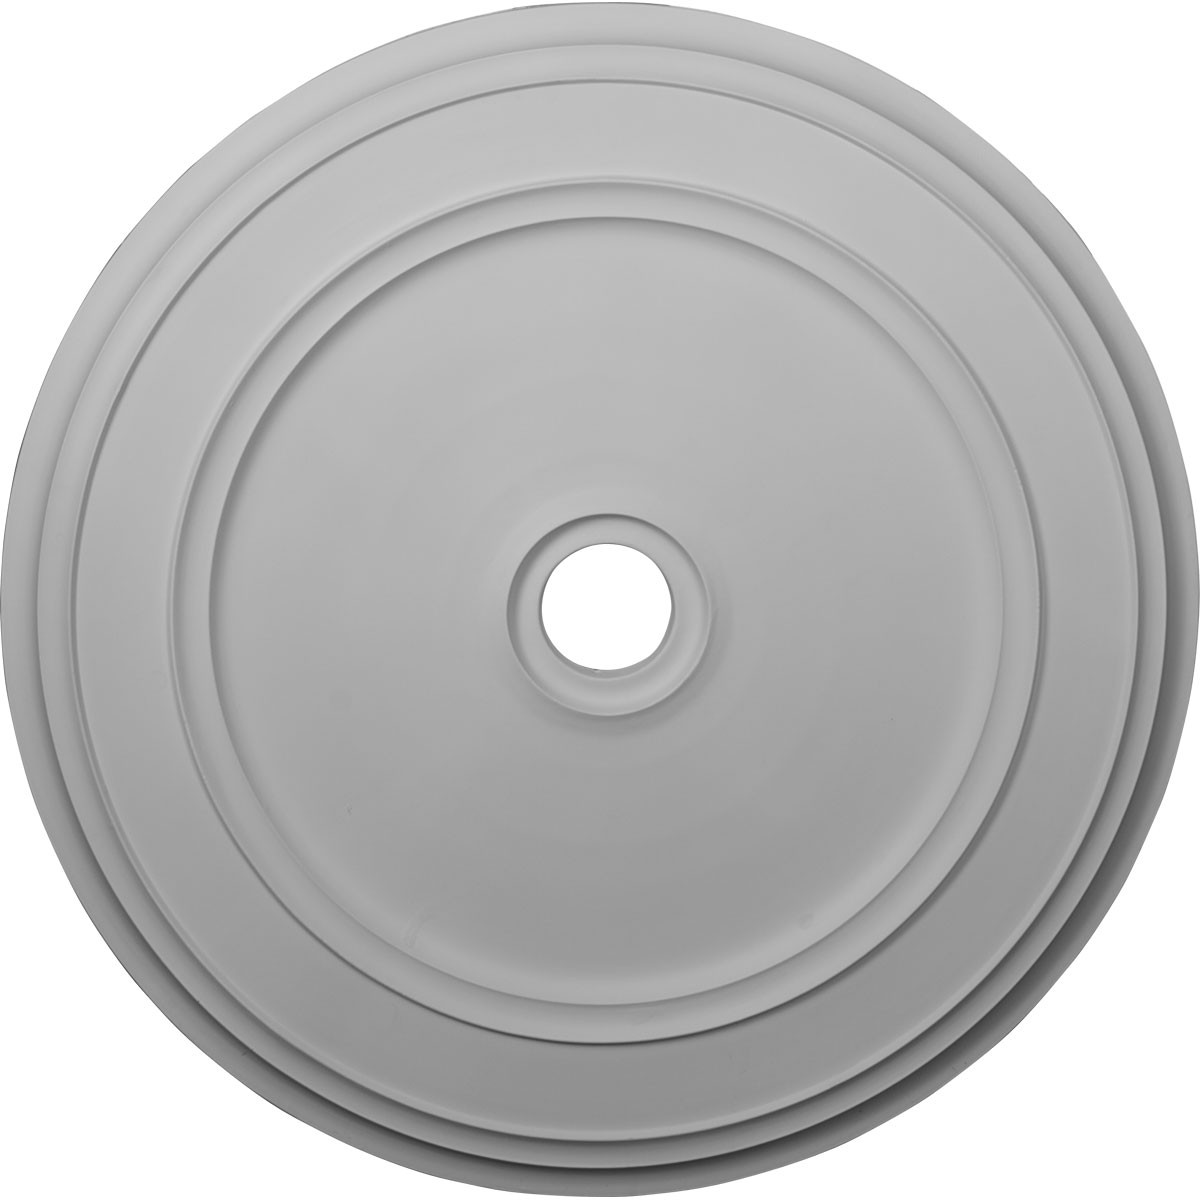 """EM-CM41CL - 41 1/8""""OD x 4""""ID x 2 1/8""""P Classic Ceiling Medallion (Fits Canopies up to 5 1/2"""")"""